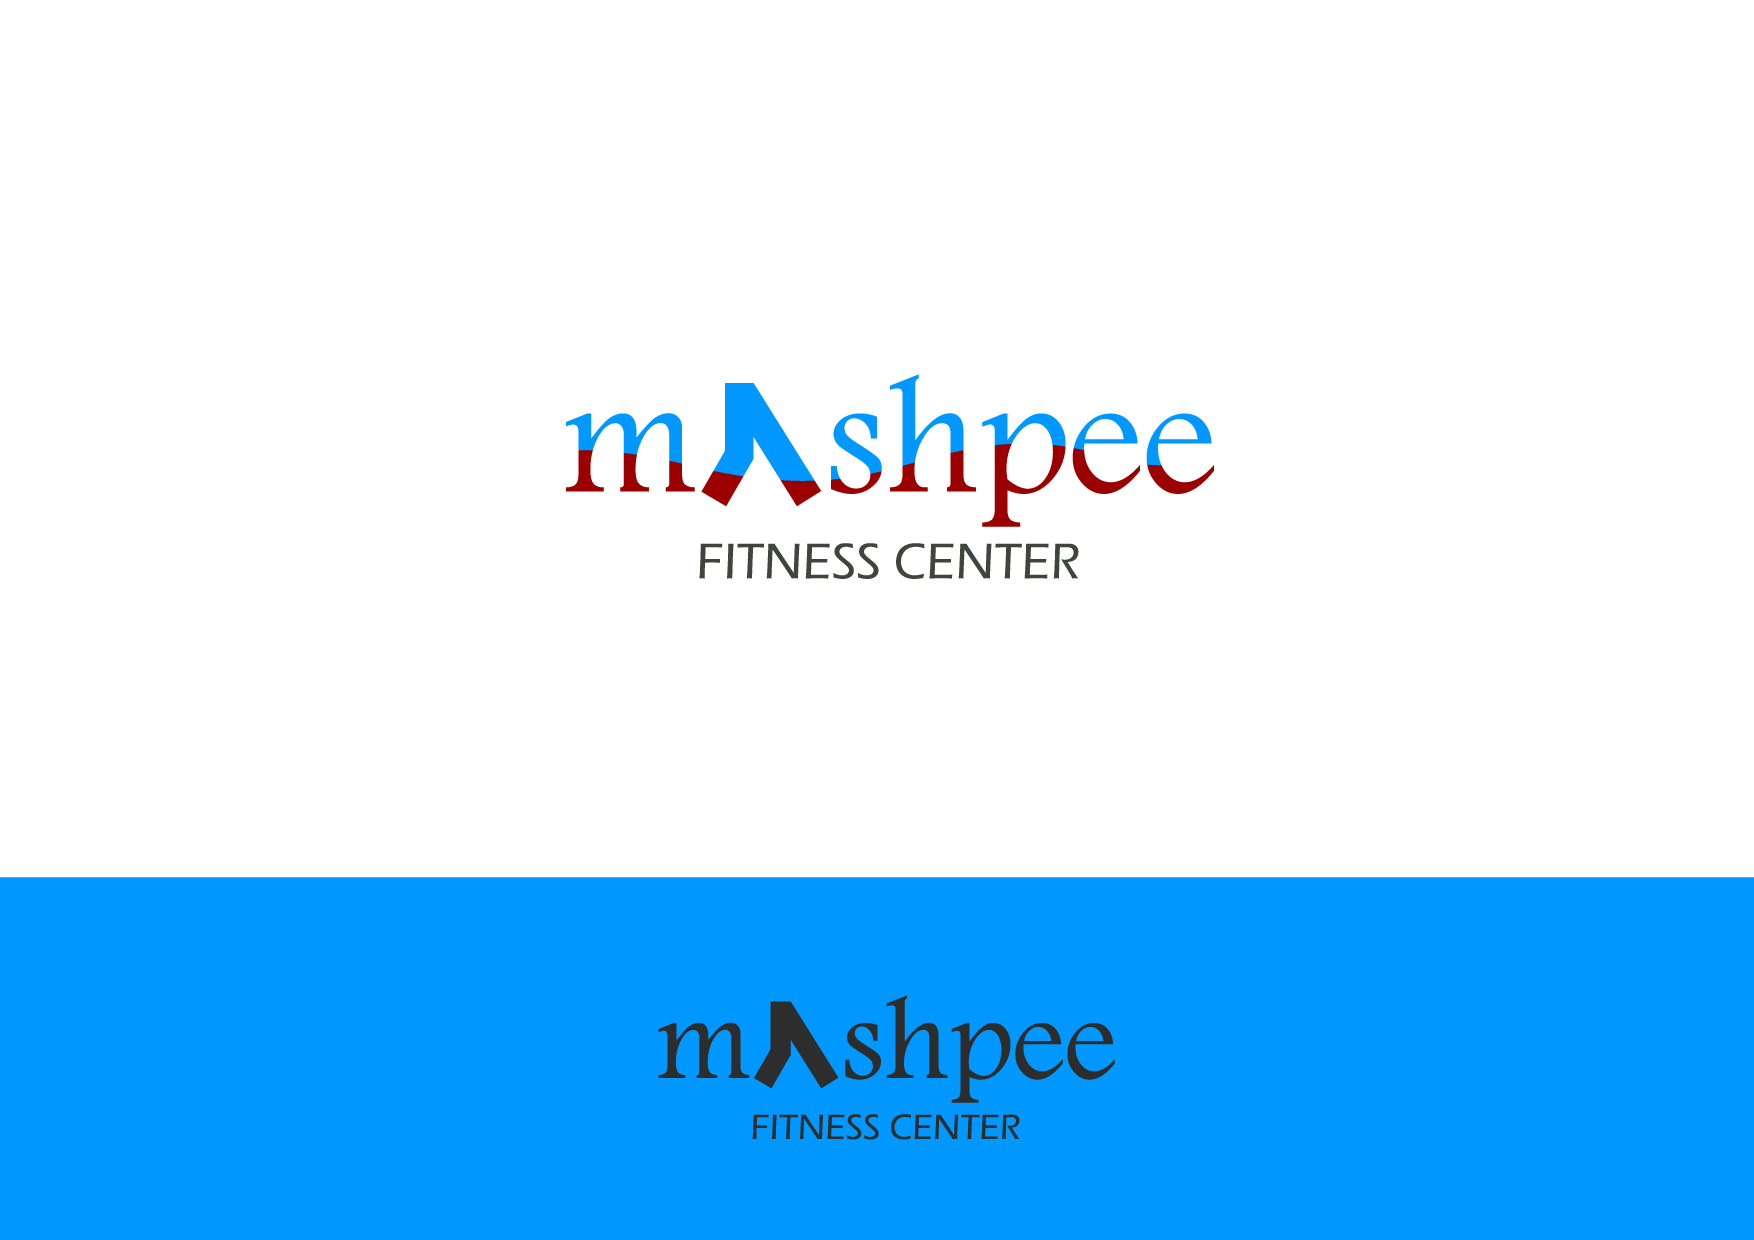 Logo Design by Osi Indra - Entry No. 89 in the Logo Design Contest New Logo Design for Mashpee Fitness Center.